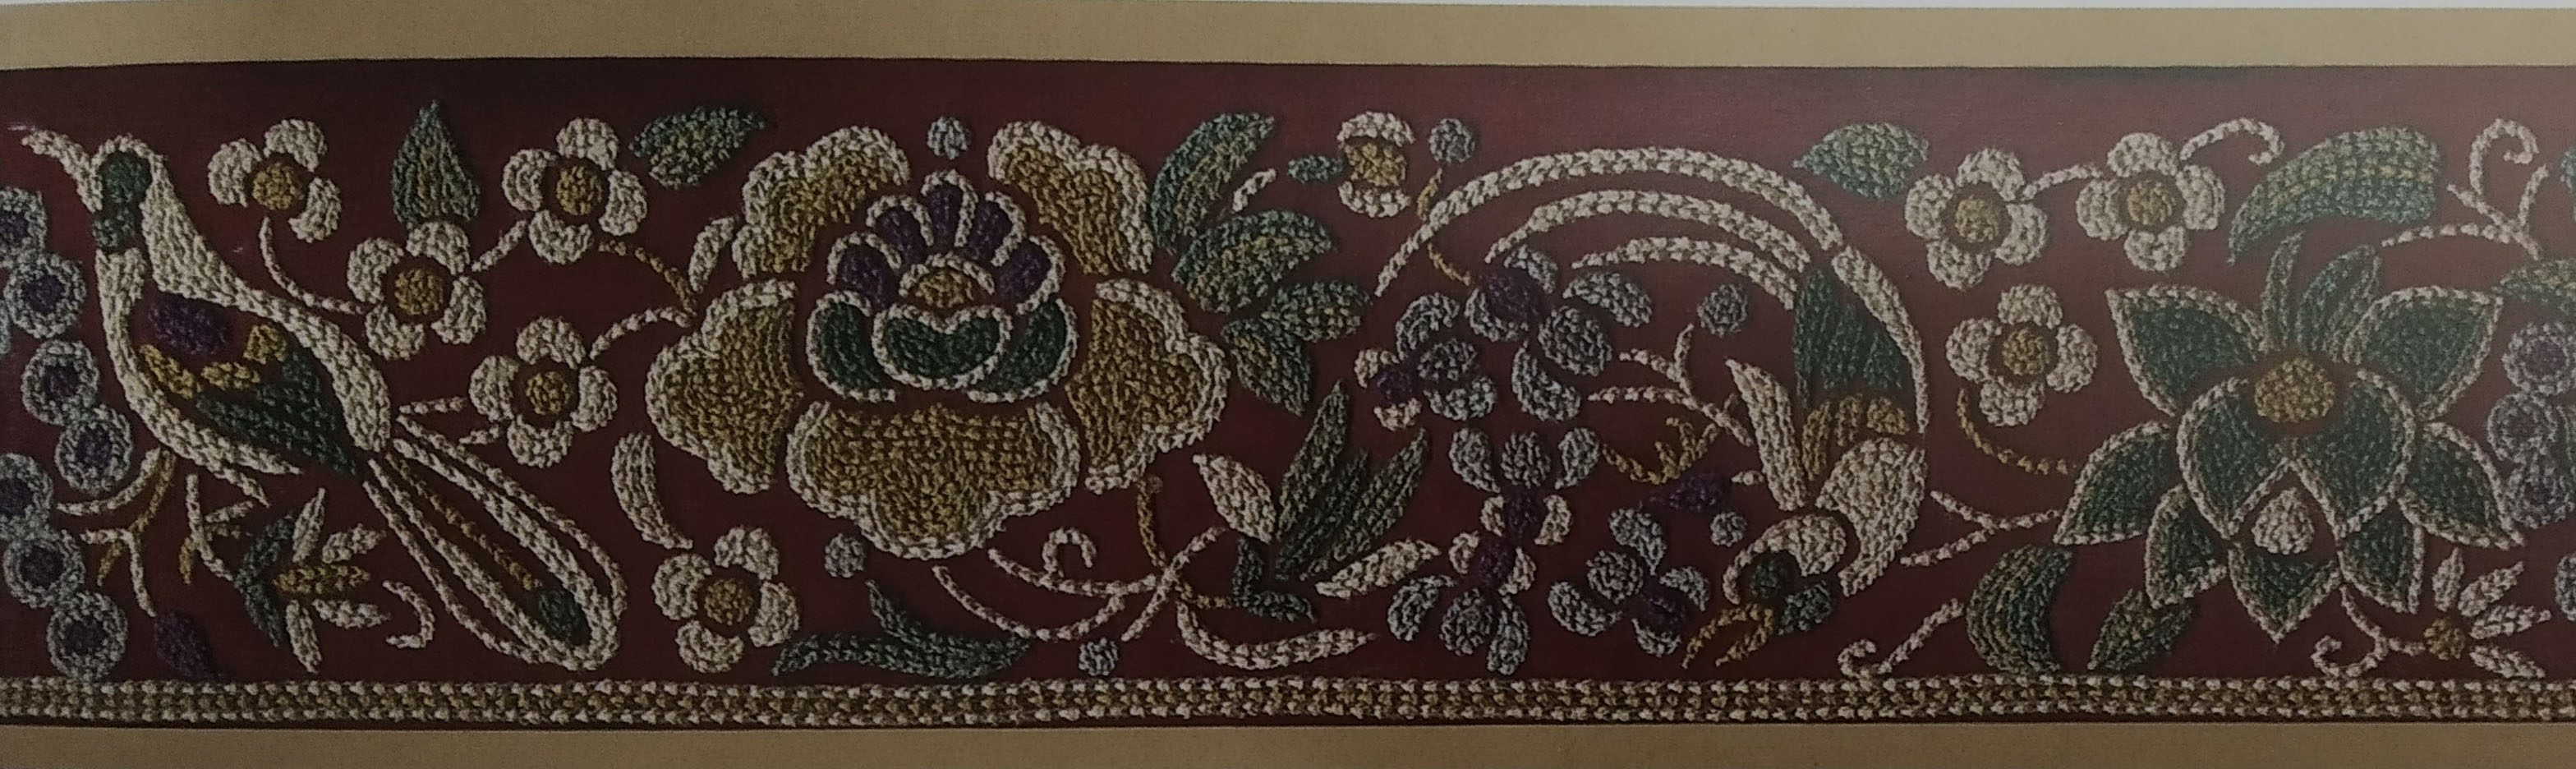 Parsi Embroidery of Gujarat